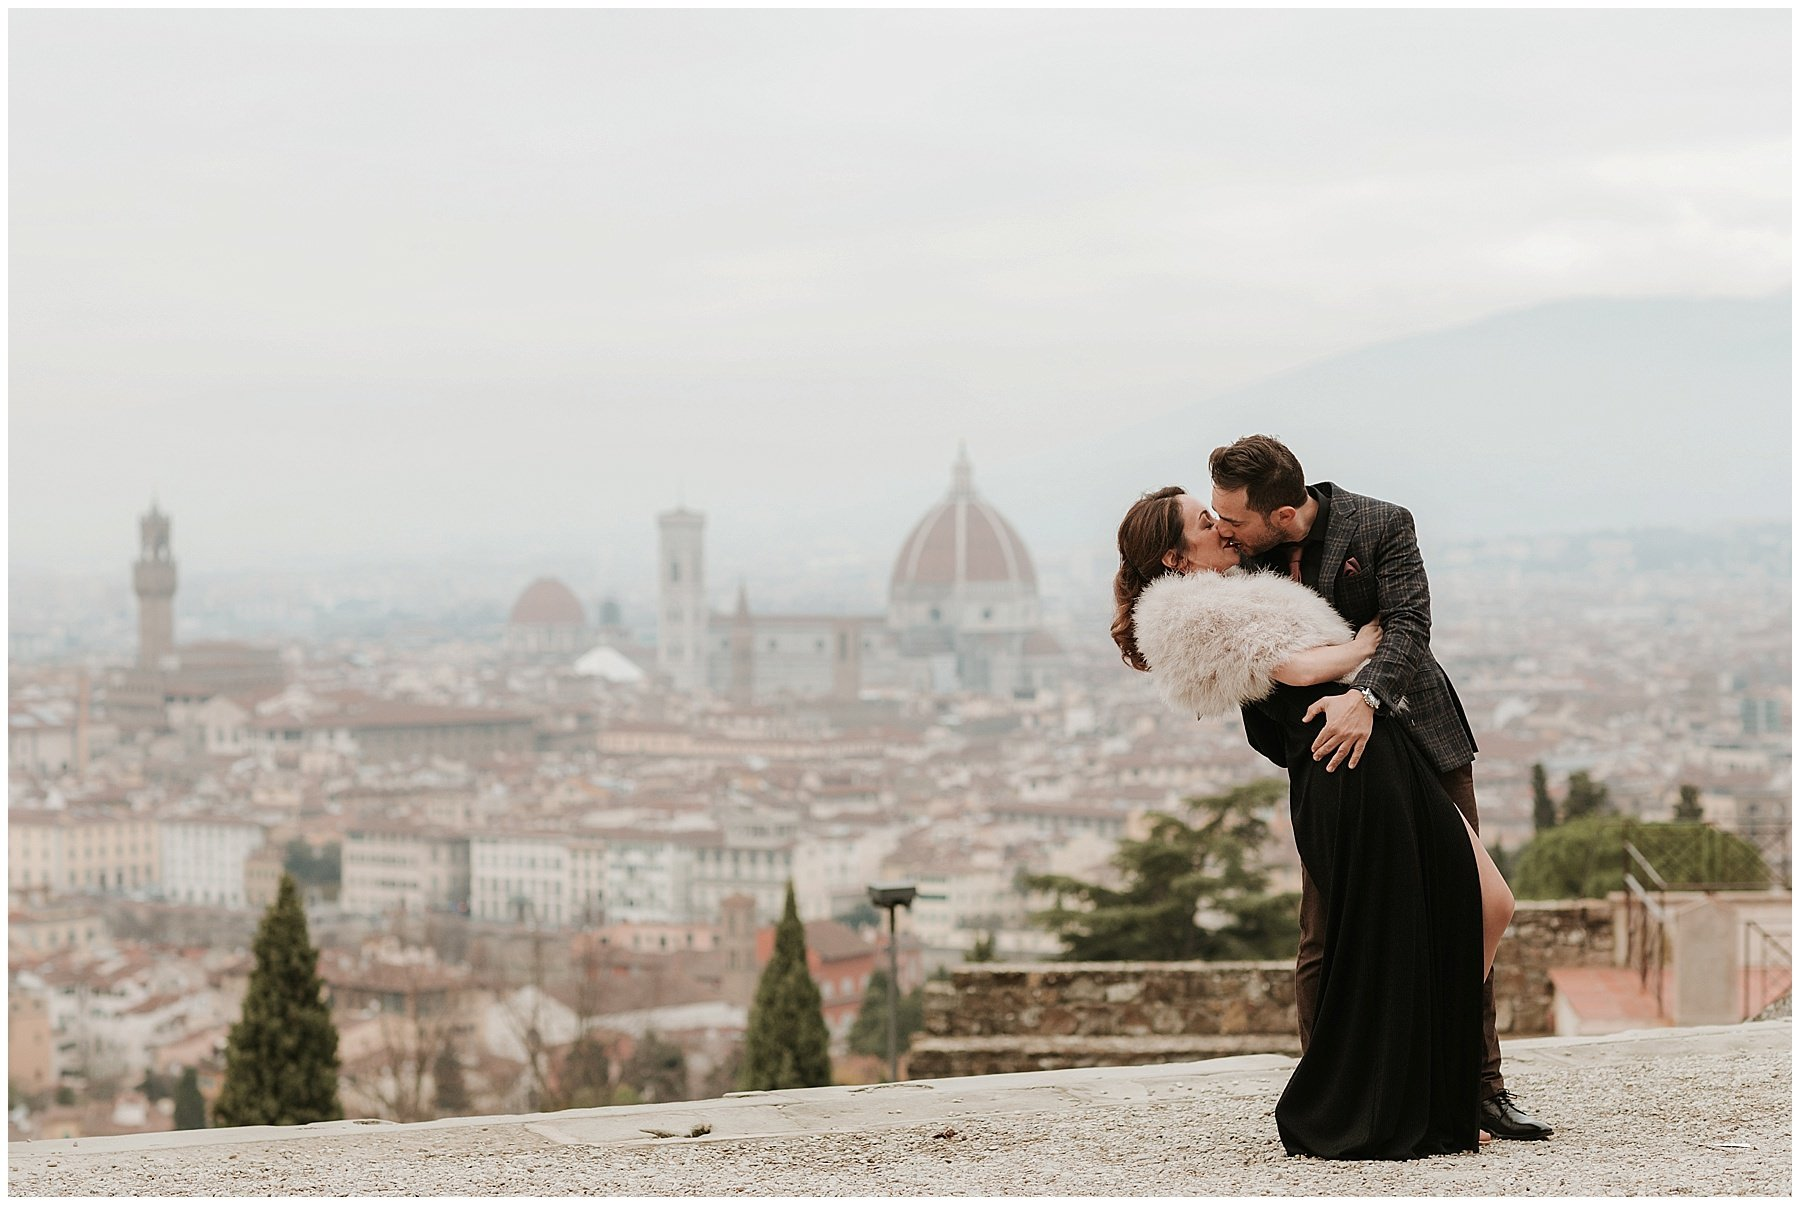 Celebrate your love with winter engagement photos in Florence